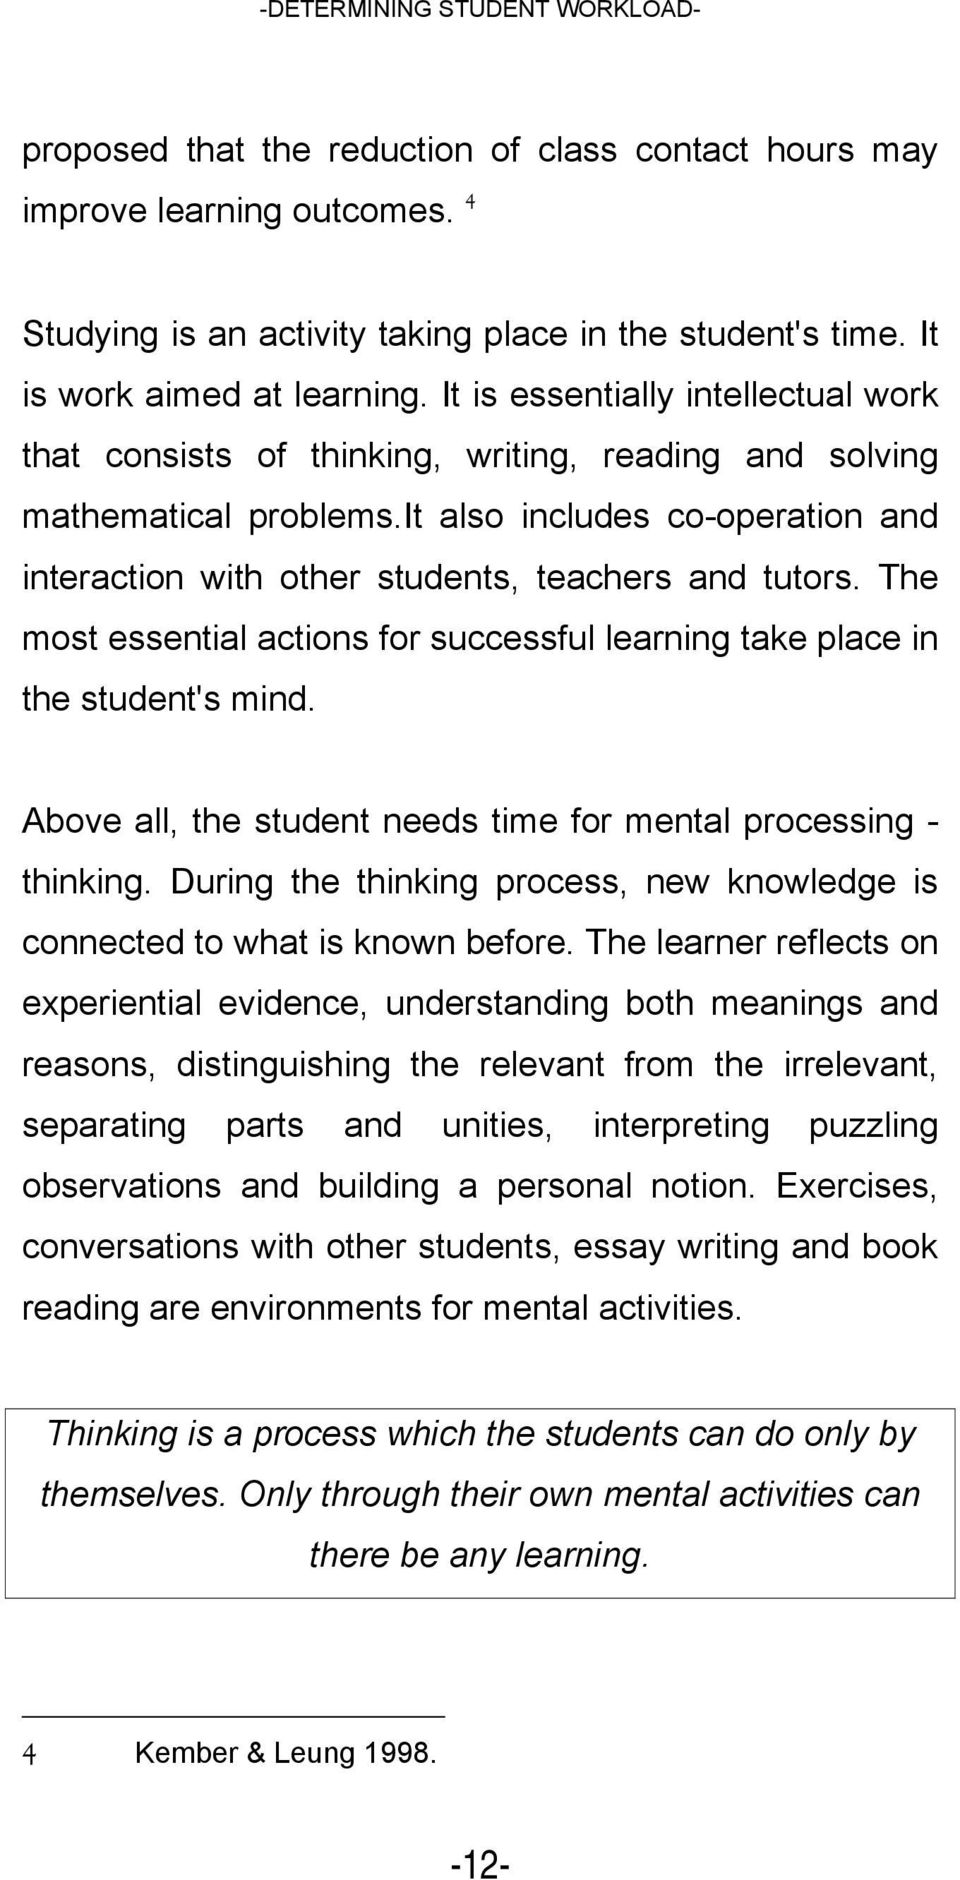 it also includes co-operation and interaction with other students, teachers and tutors. The most essential actions for successful learning take place in the student's mind.